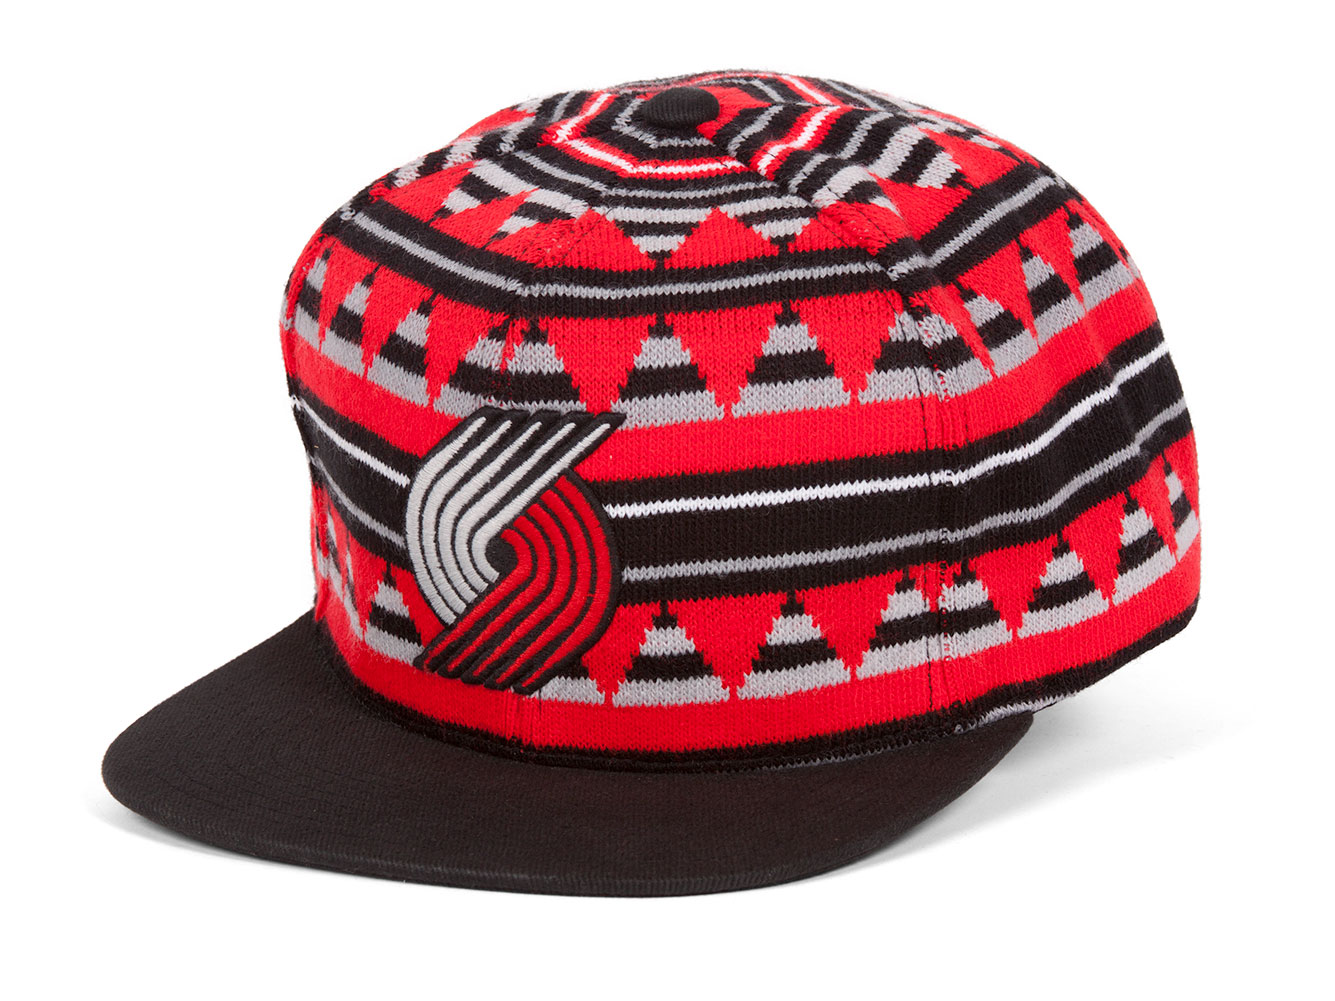 f816da24f30 Details about Mitchell   Ness Men s NBA Mixtec Snapback Hat - Portland  Trailblazers